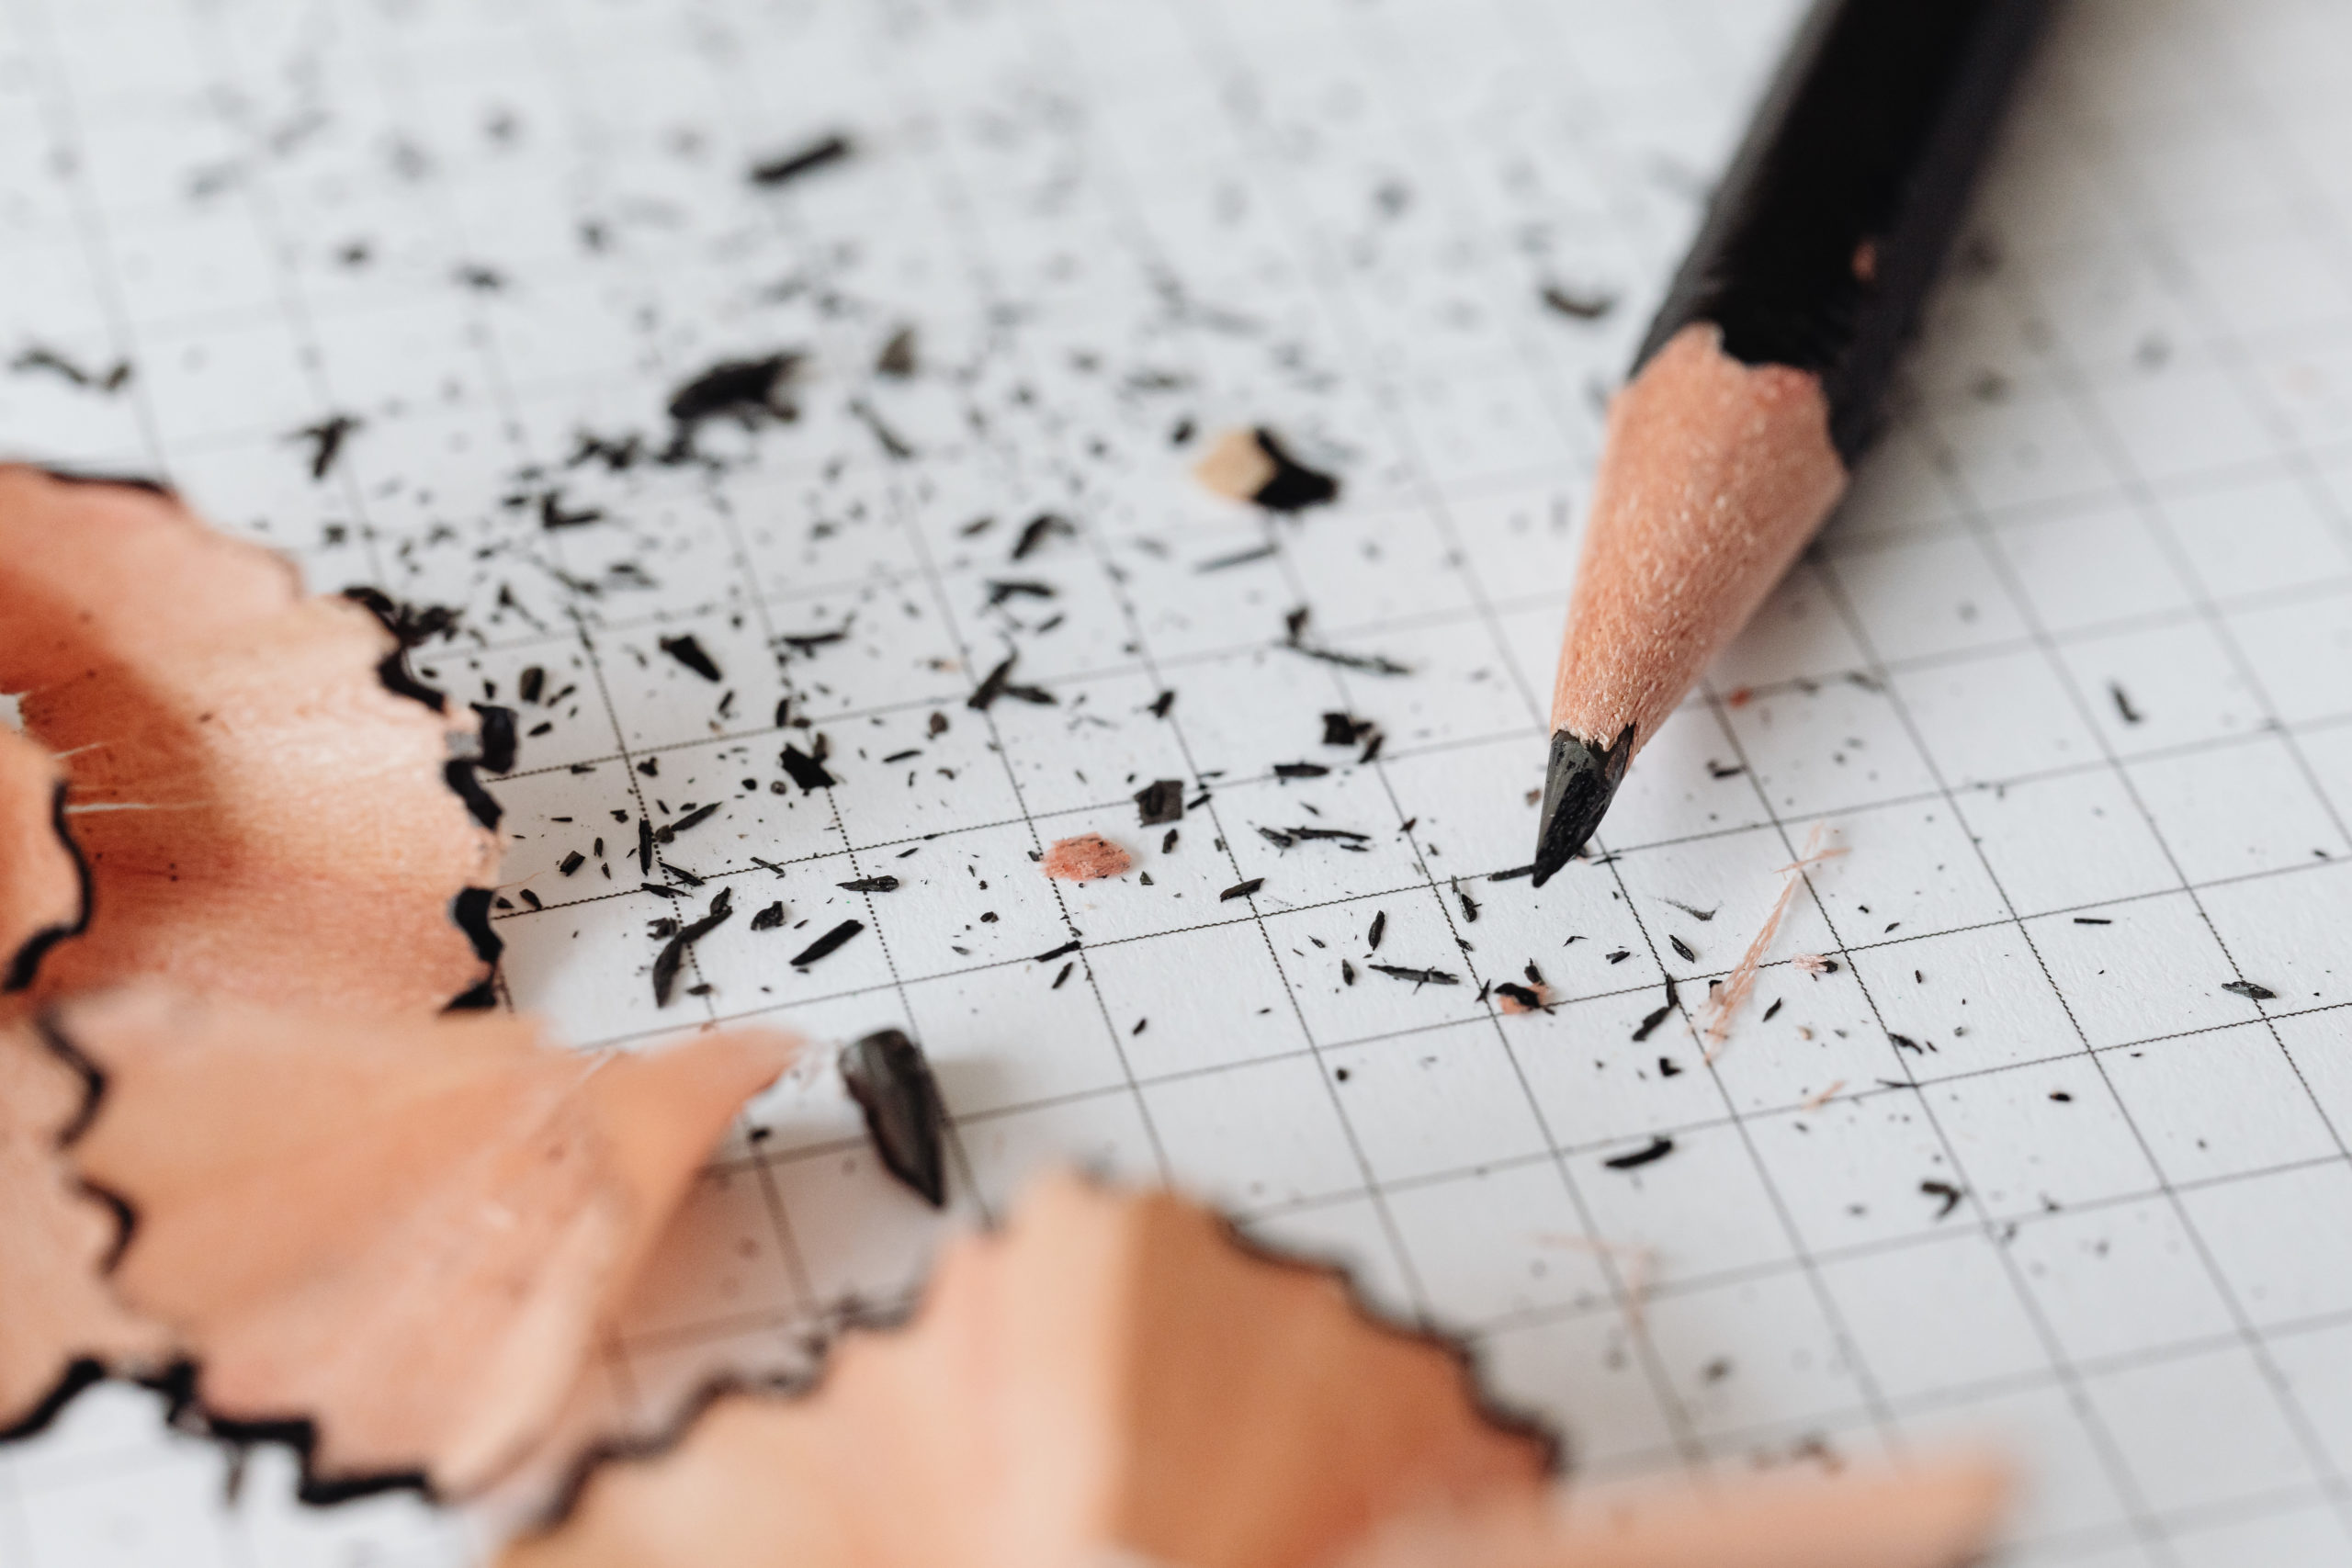 Picture of a pencil and sharpener shavings on graph paper.